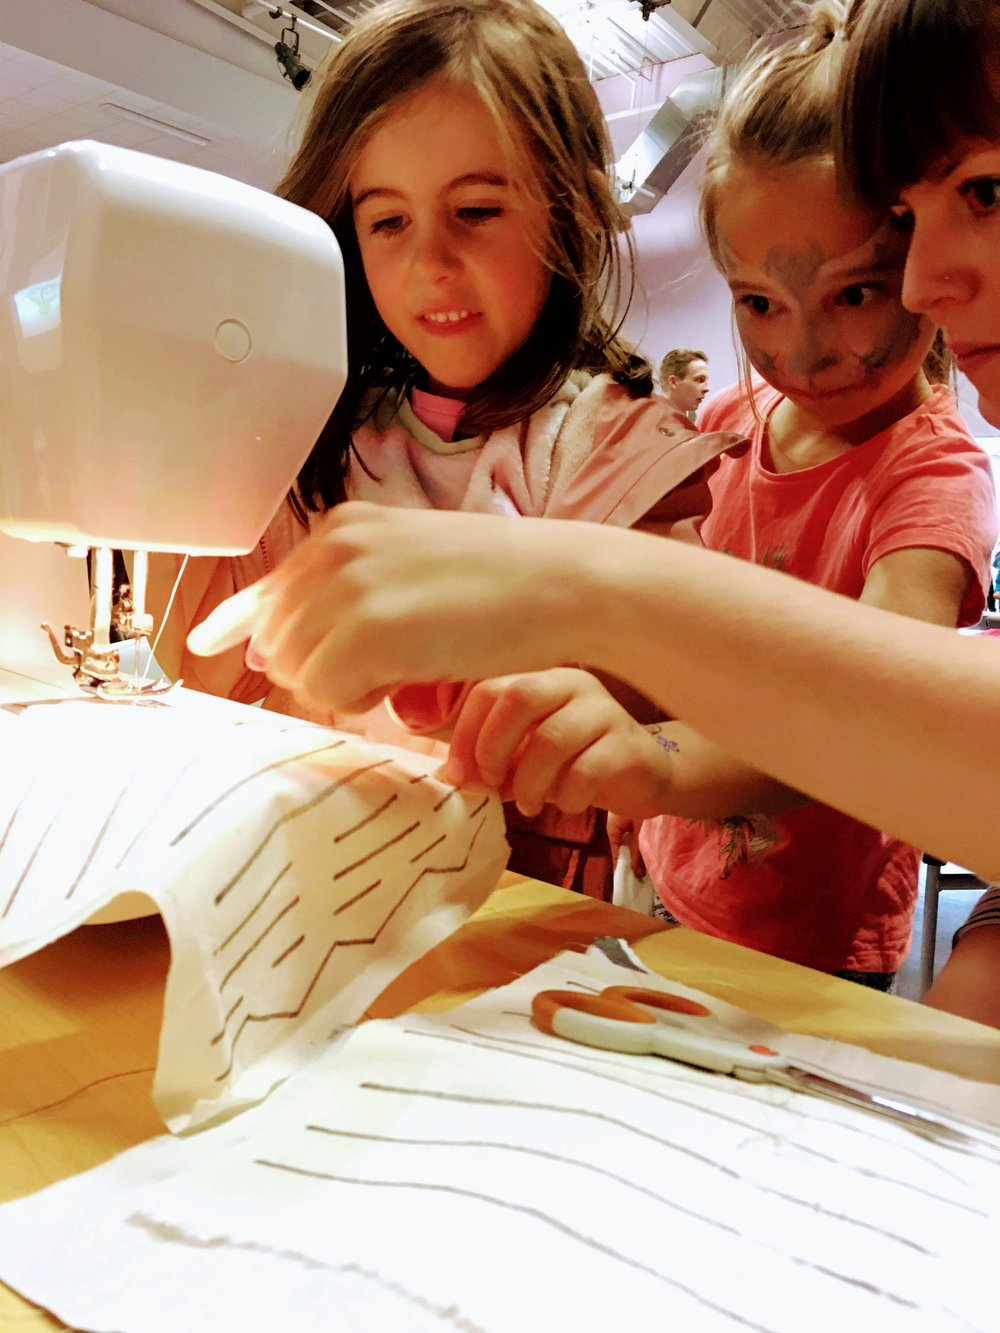 REmode club - fashion course for kids - Have your children shown interest in fashion design and sewing? In our studio, they can try it out themselves with our help!